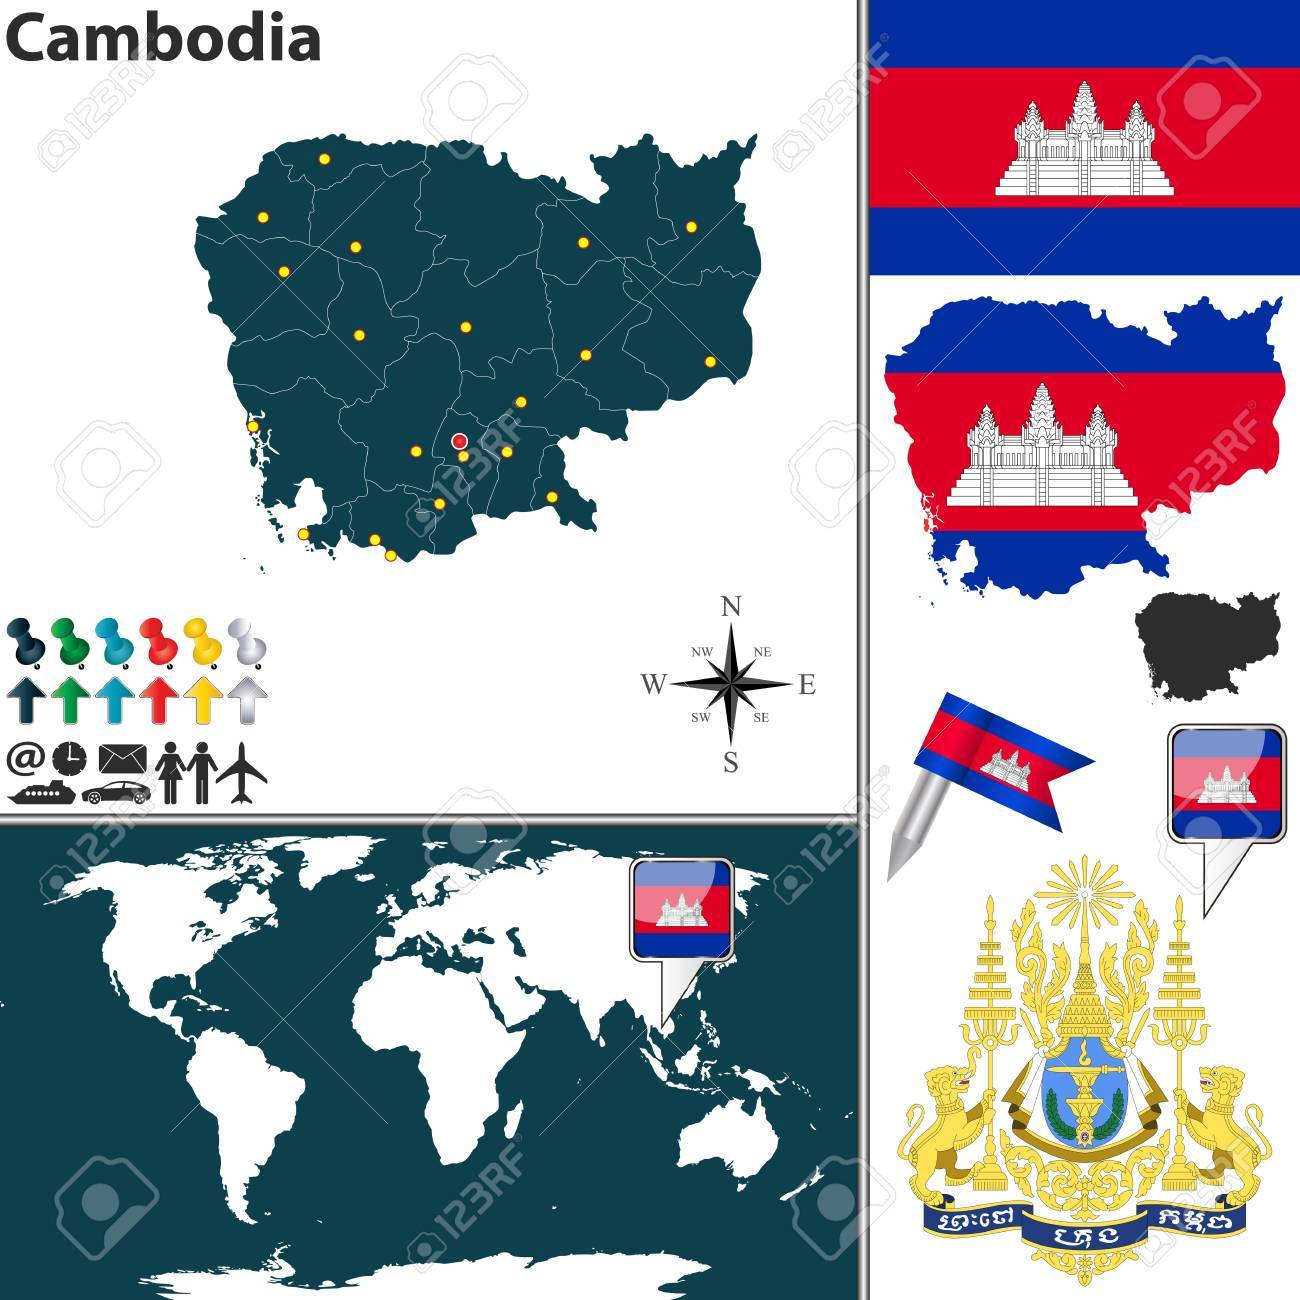 Vector Map Of Cambodia With Coat Of Arms And Location On World ...